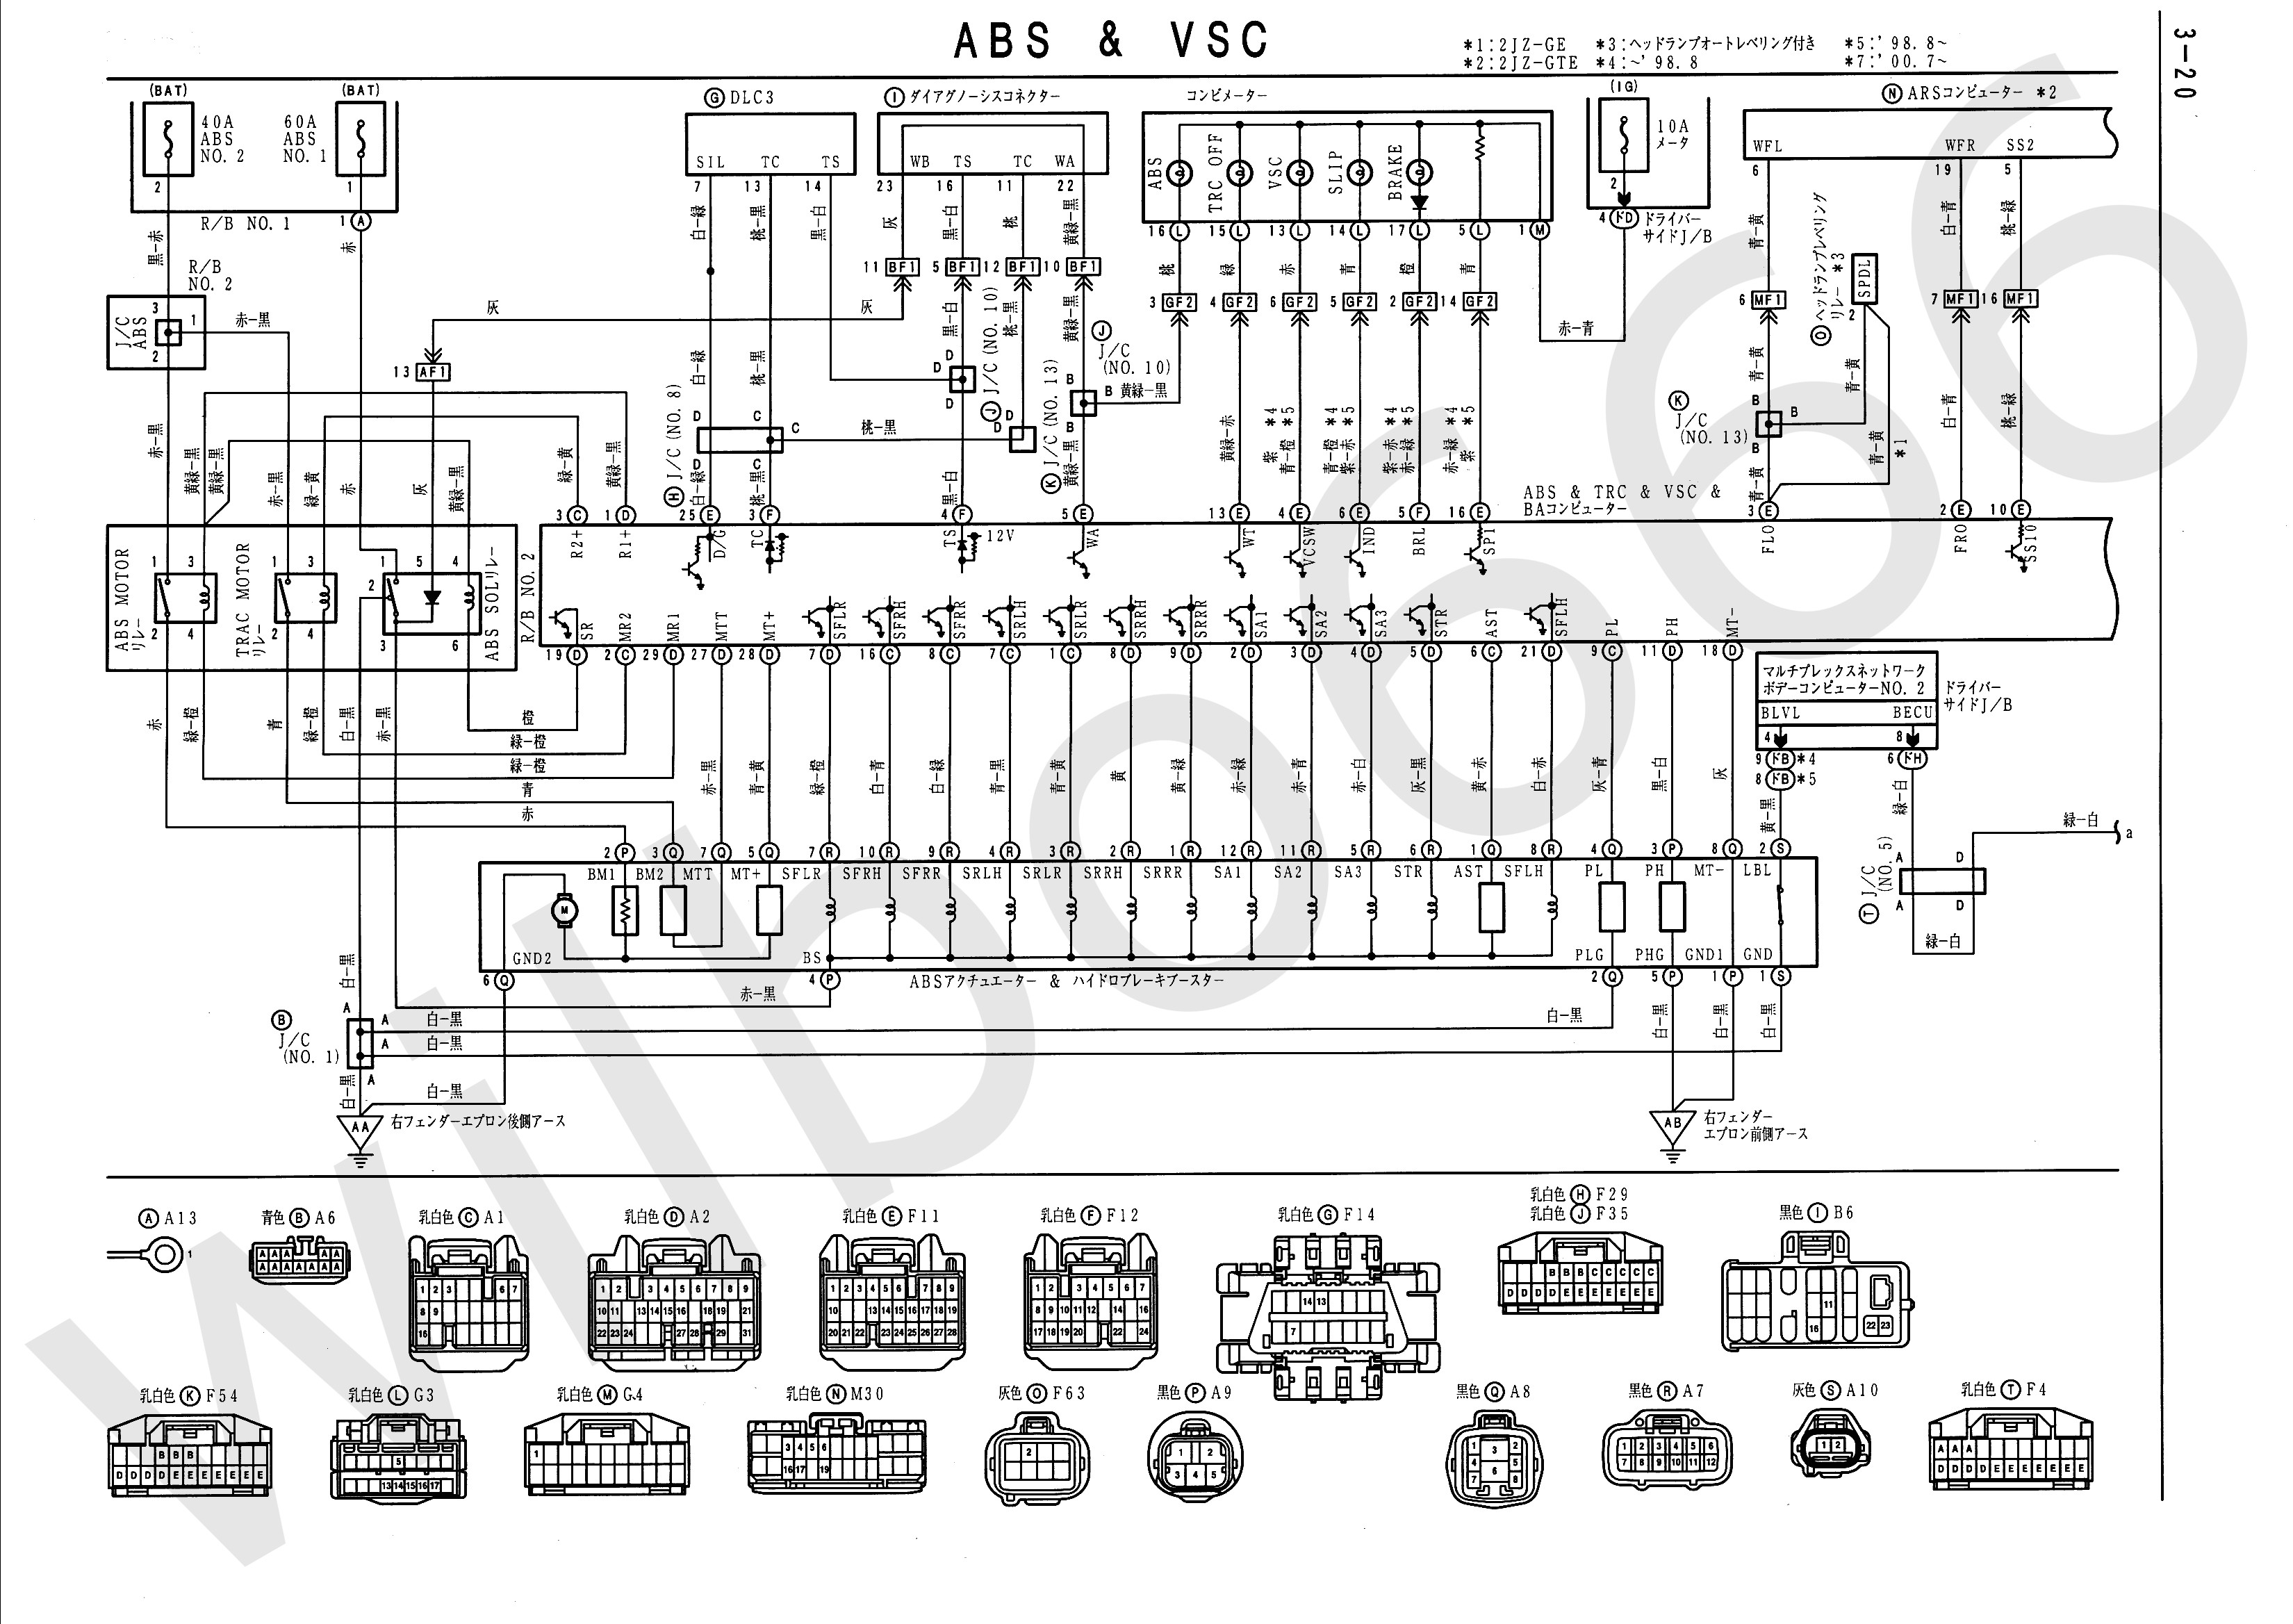 Daihatsu Hijet Engine Diagram Daihatsu Mira L200s Wiring Diagram Wiring Data Of Daihatsu Hijet Engine Diagram